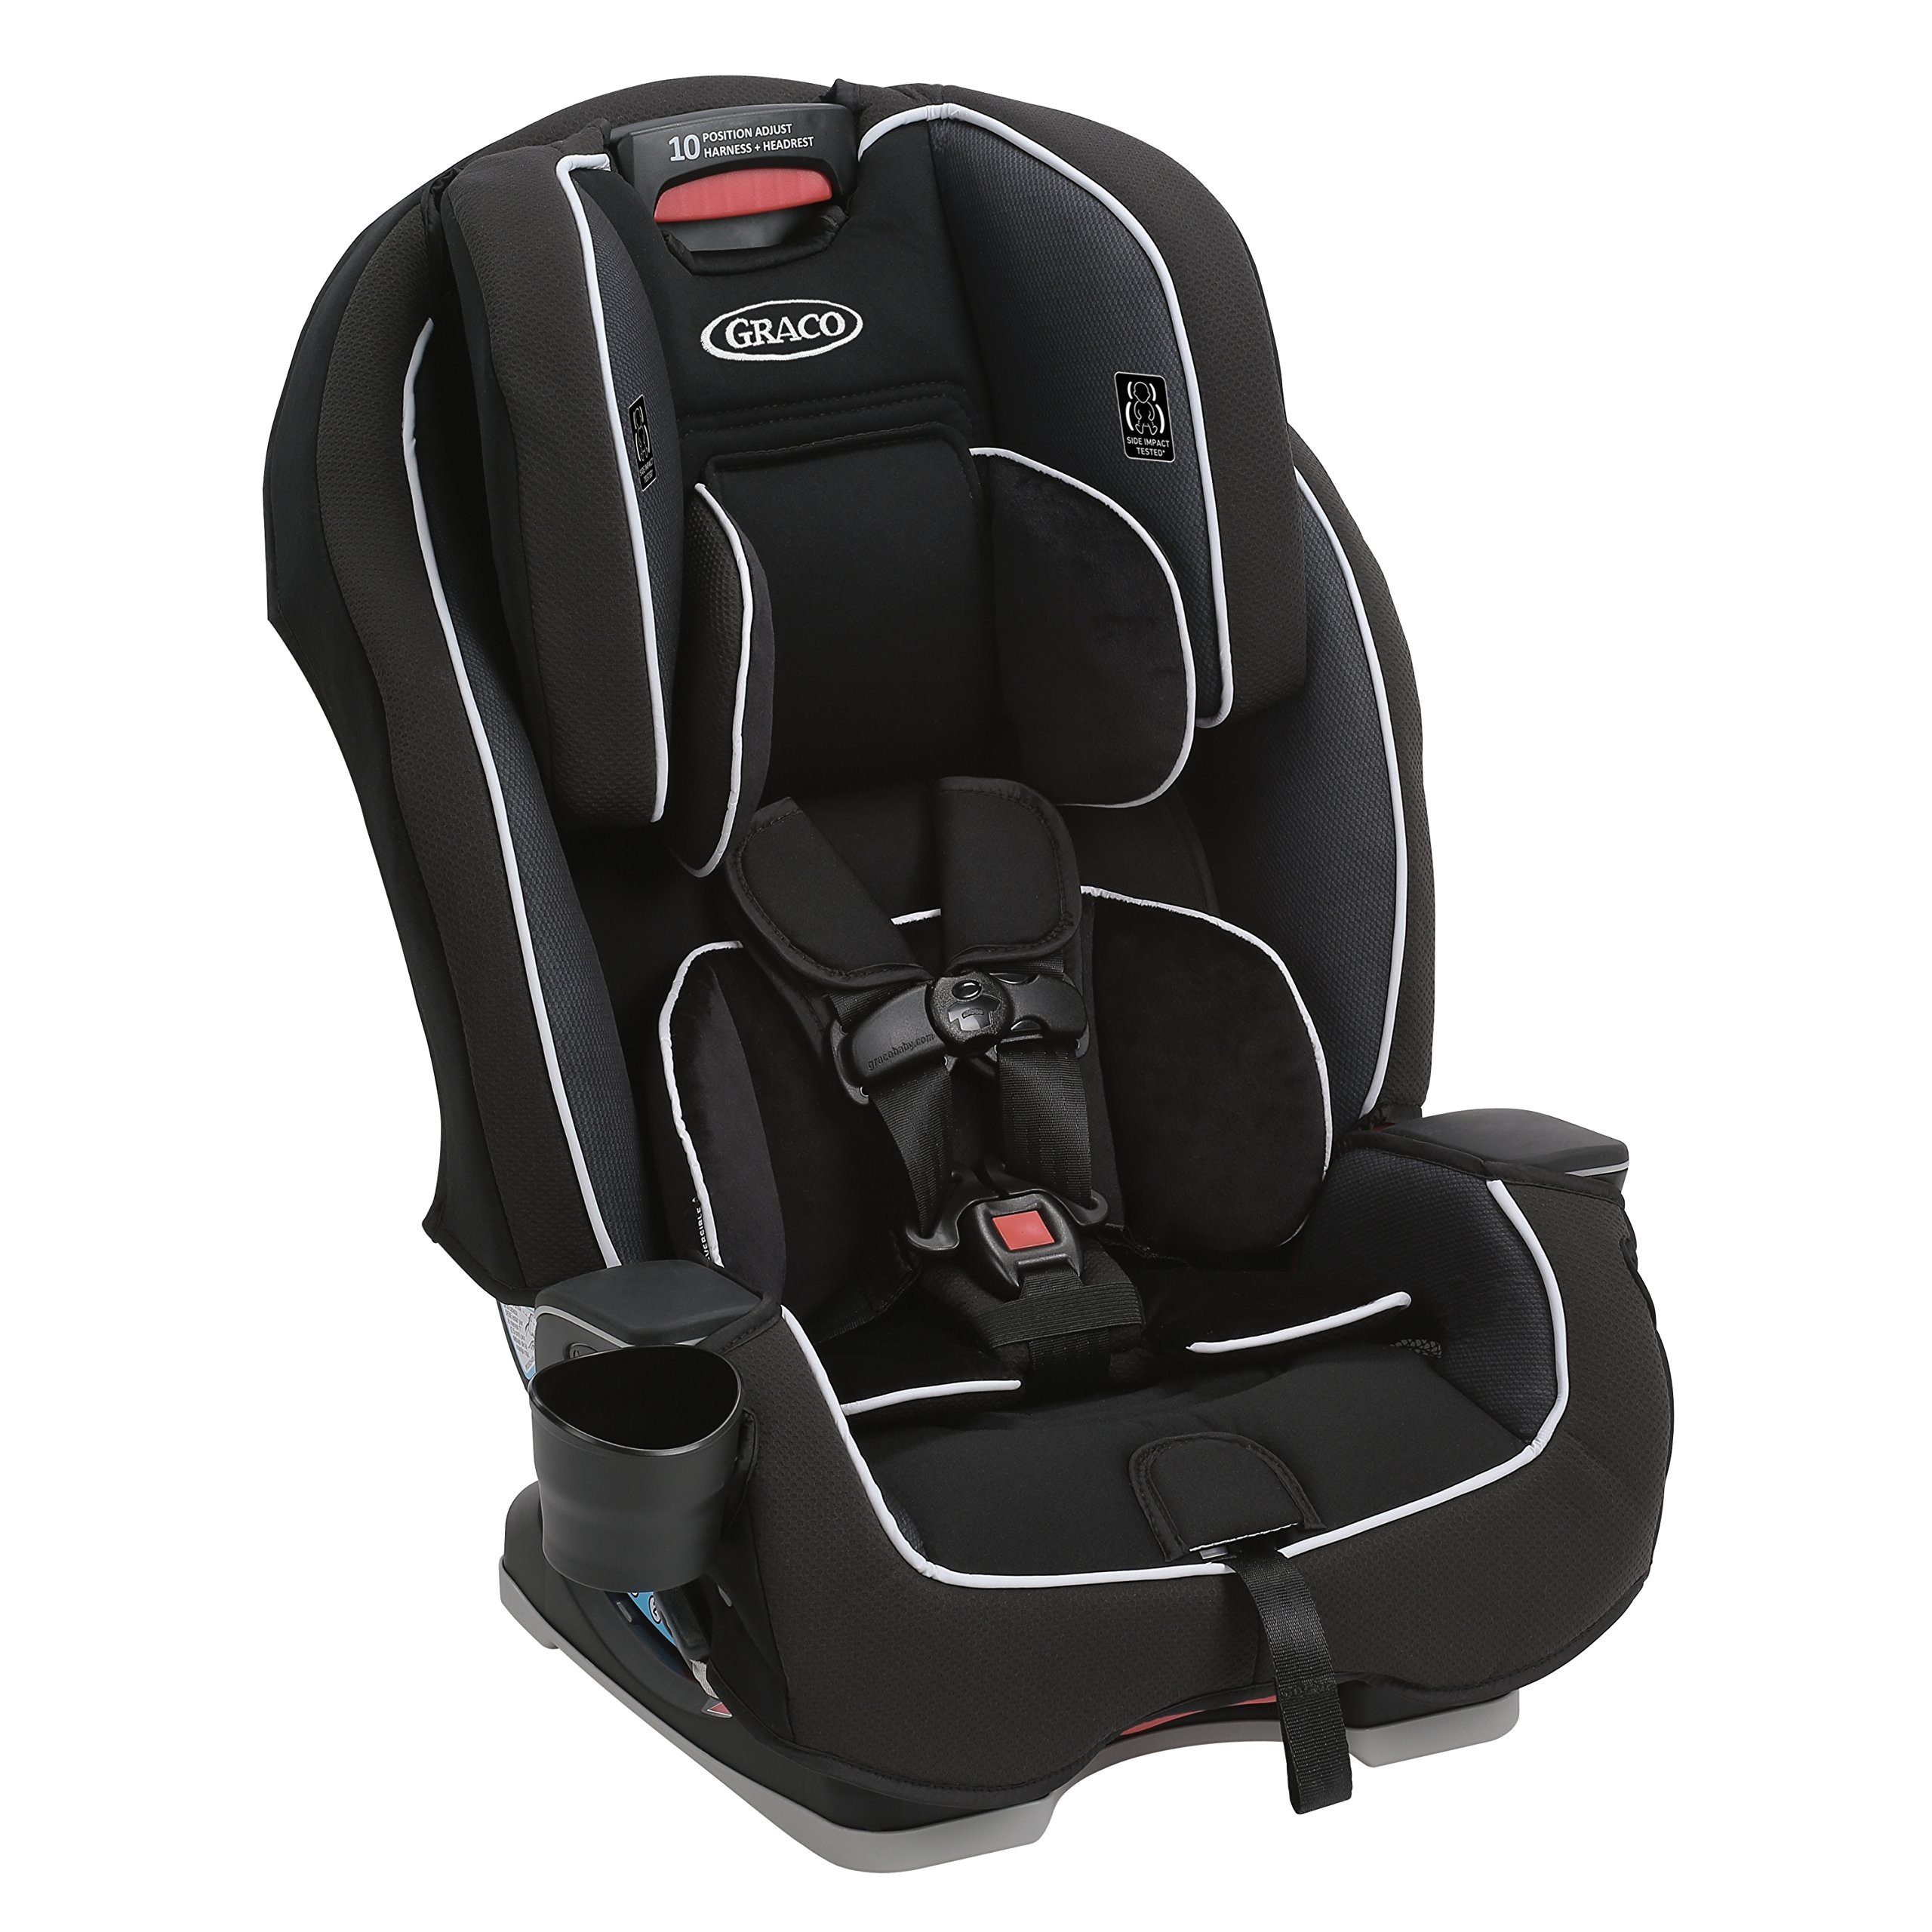 Graco Milestone All-in-1 Convertible Car Seat, Gotham by Graco (Image #4)